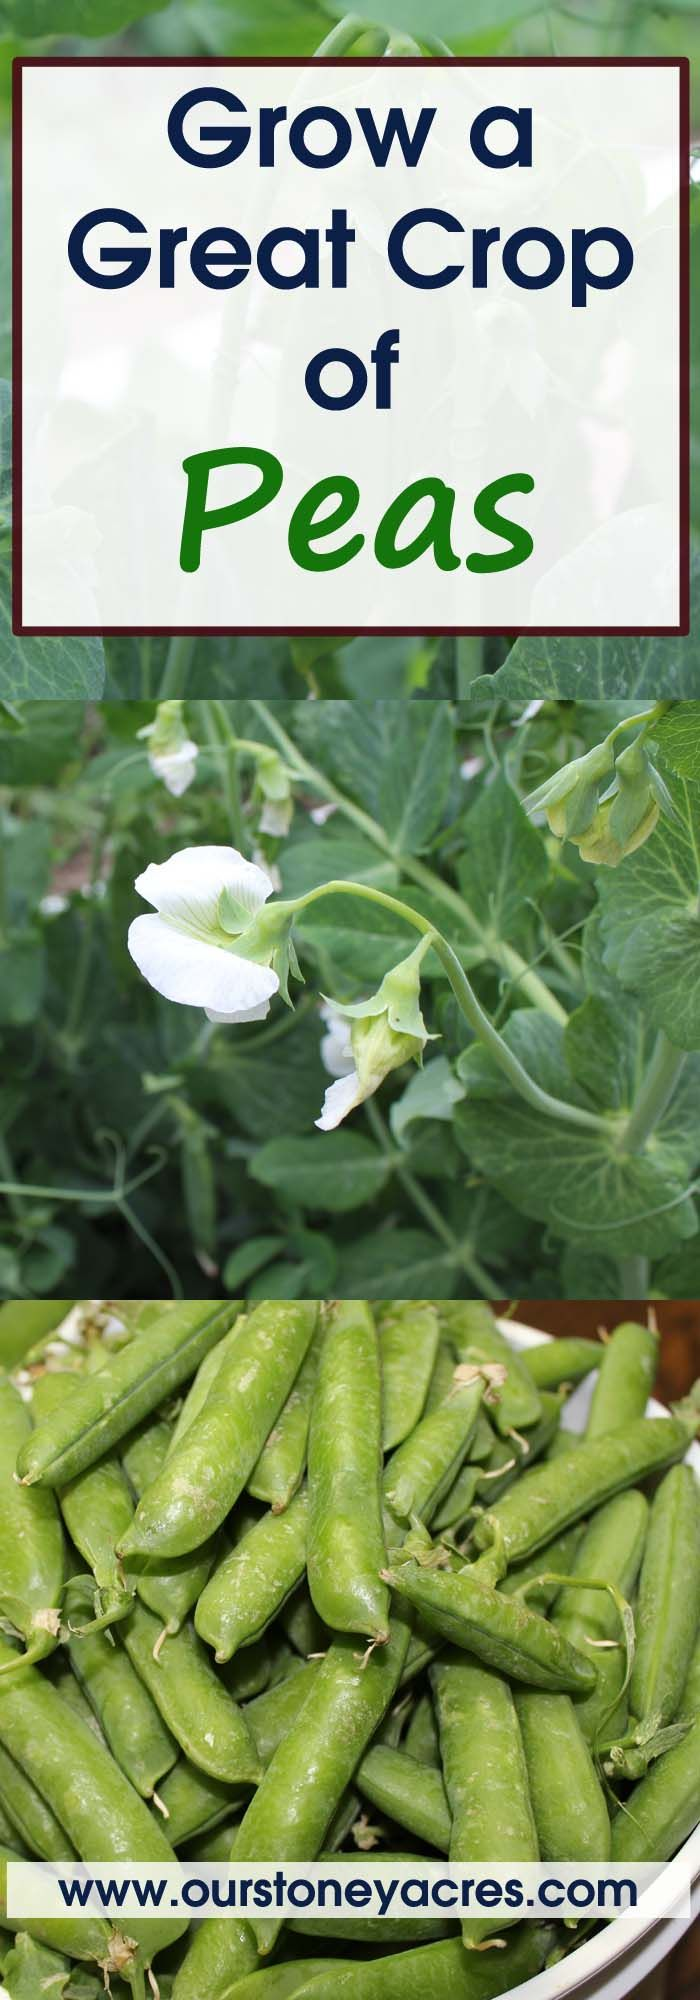 Growing peas in your garden is one of the easiest things you can do in your garden. This post will tell you every thing you need to know about growing peas. Read this post to learn how to grow your best crop of garden grown peas ever!